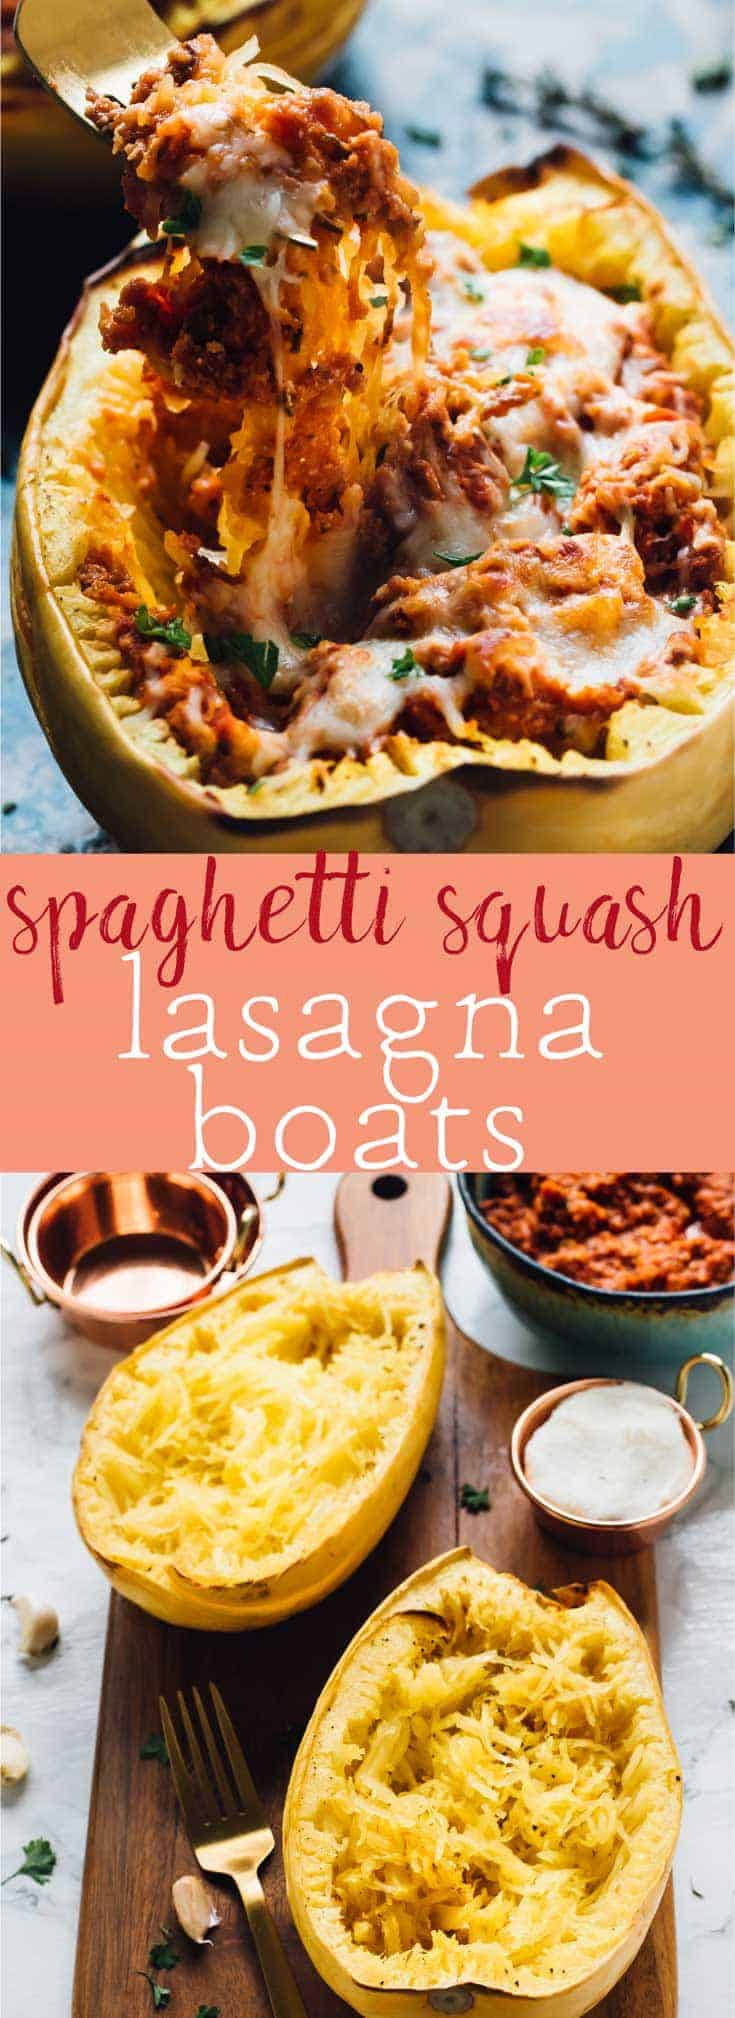 Spaghetti Squash Lasagna Boats are an easy, low carb and absolutely delicious vegetarian main dish! Loaded with protein and meal plan friendly! via https://jessicainthekitchen.com